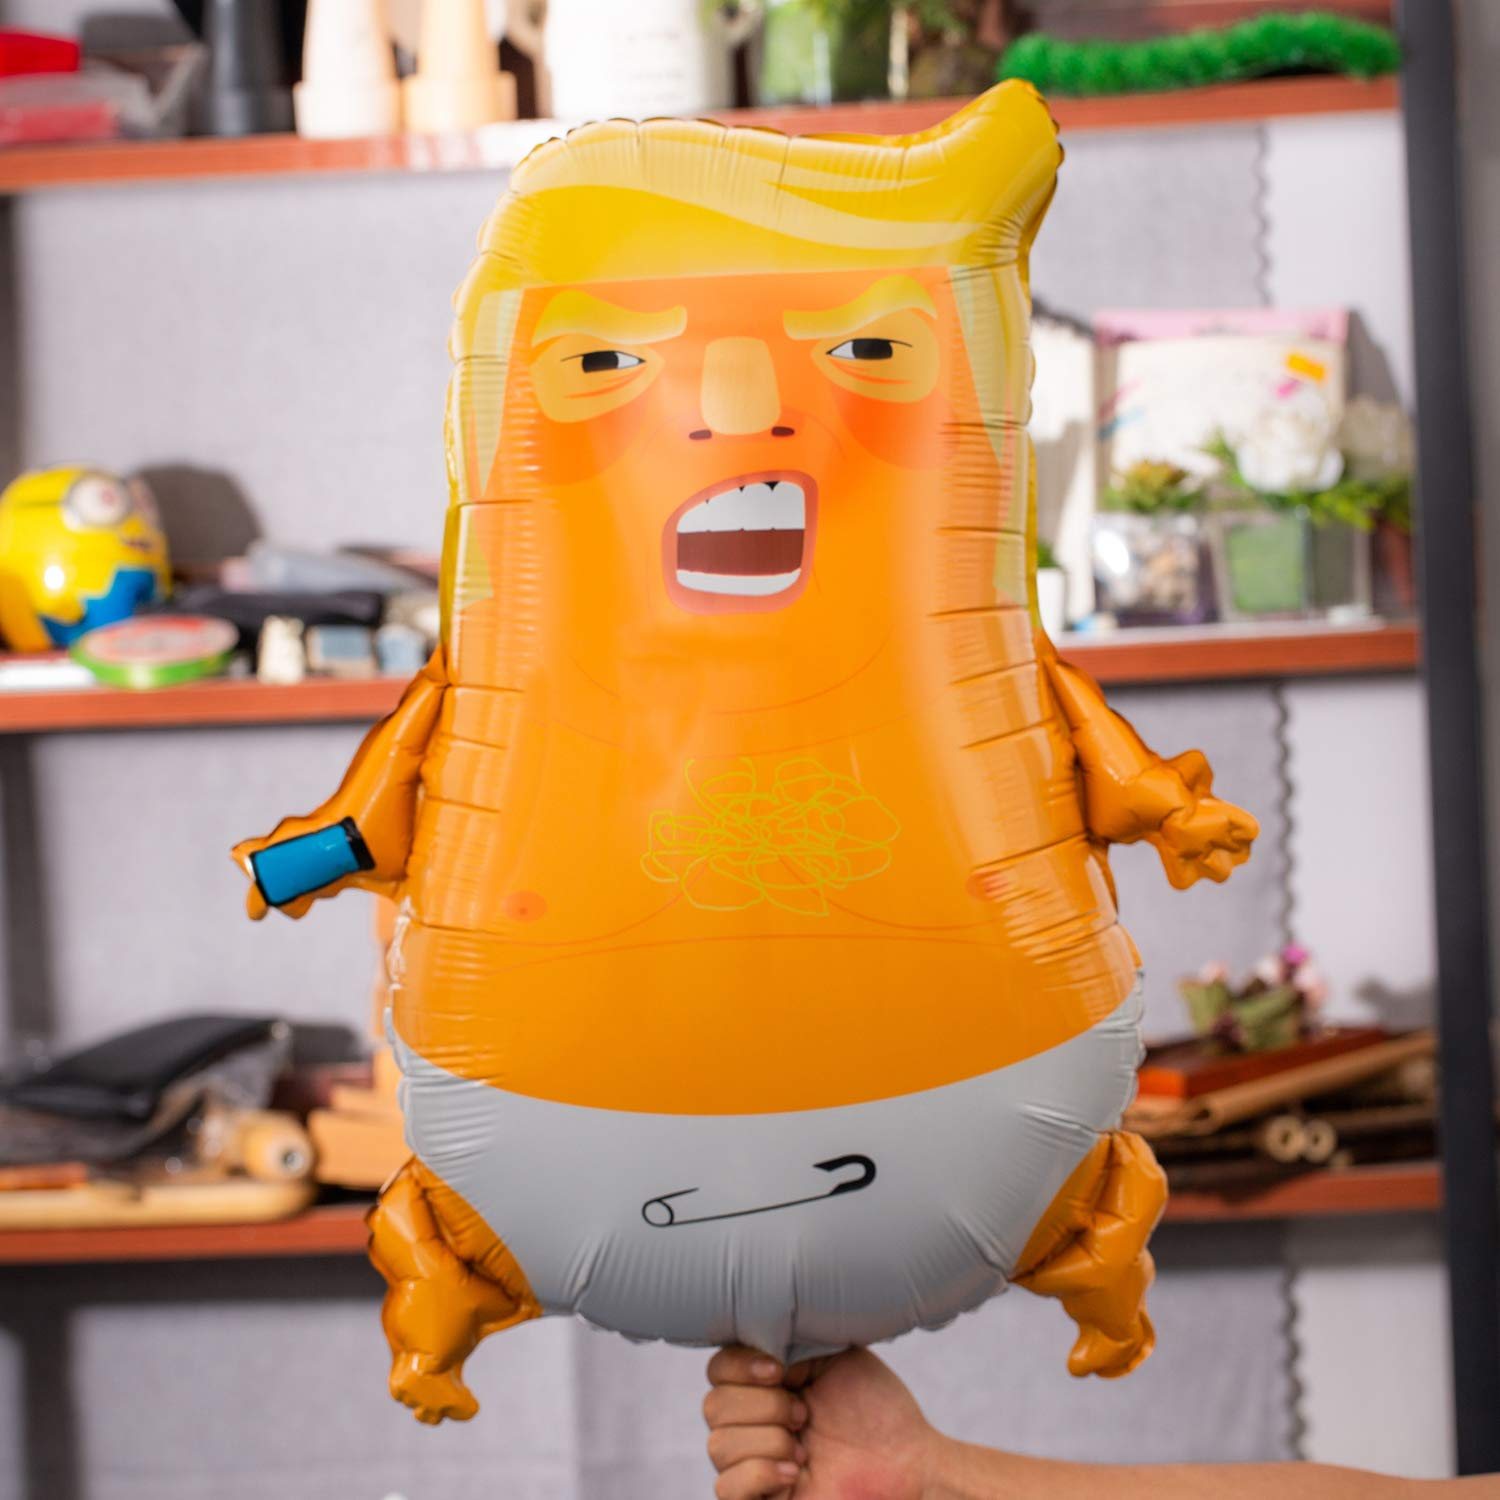 10 Pack Bonus - Angry Baby Trump Foil Balloons   24 inches   Perfect for Parties   Gag Gifts   100% Satisfaction Guarantee